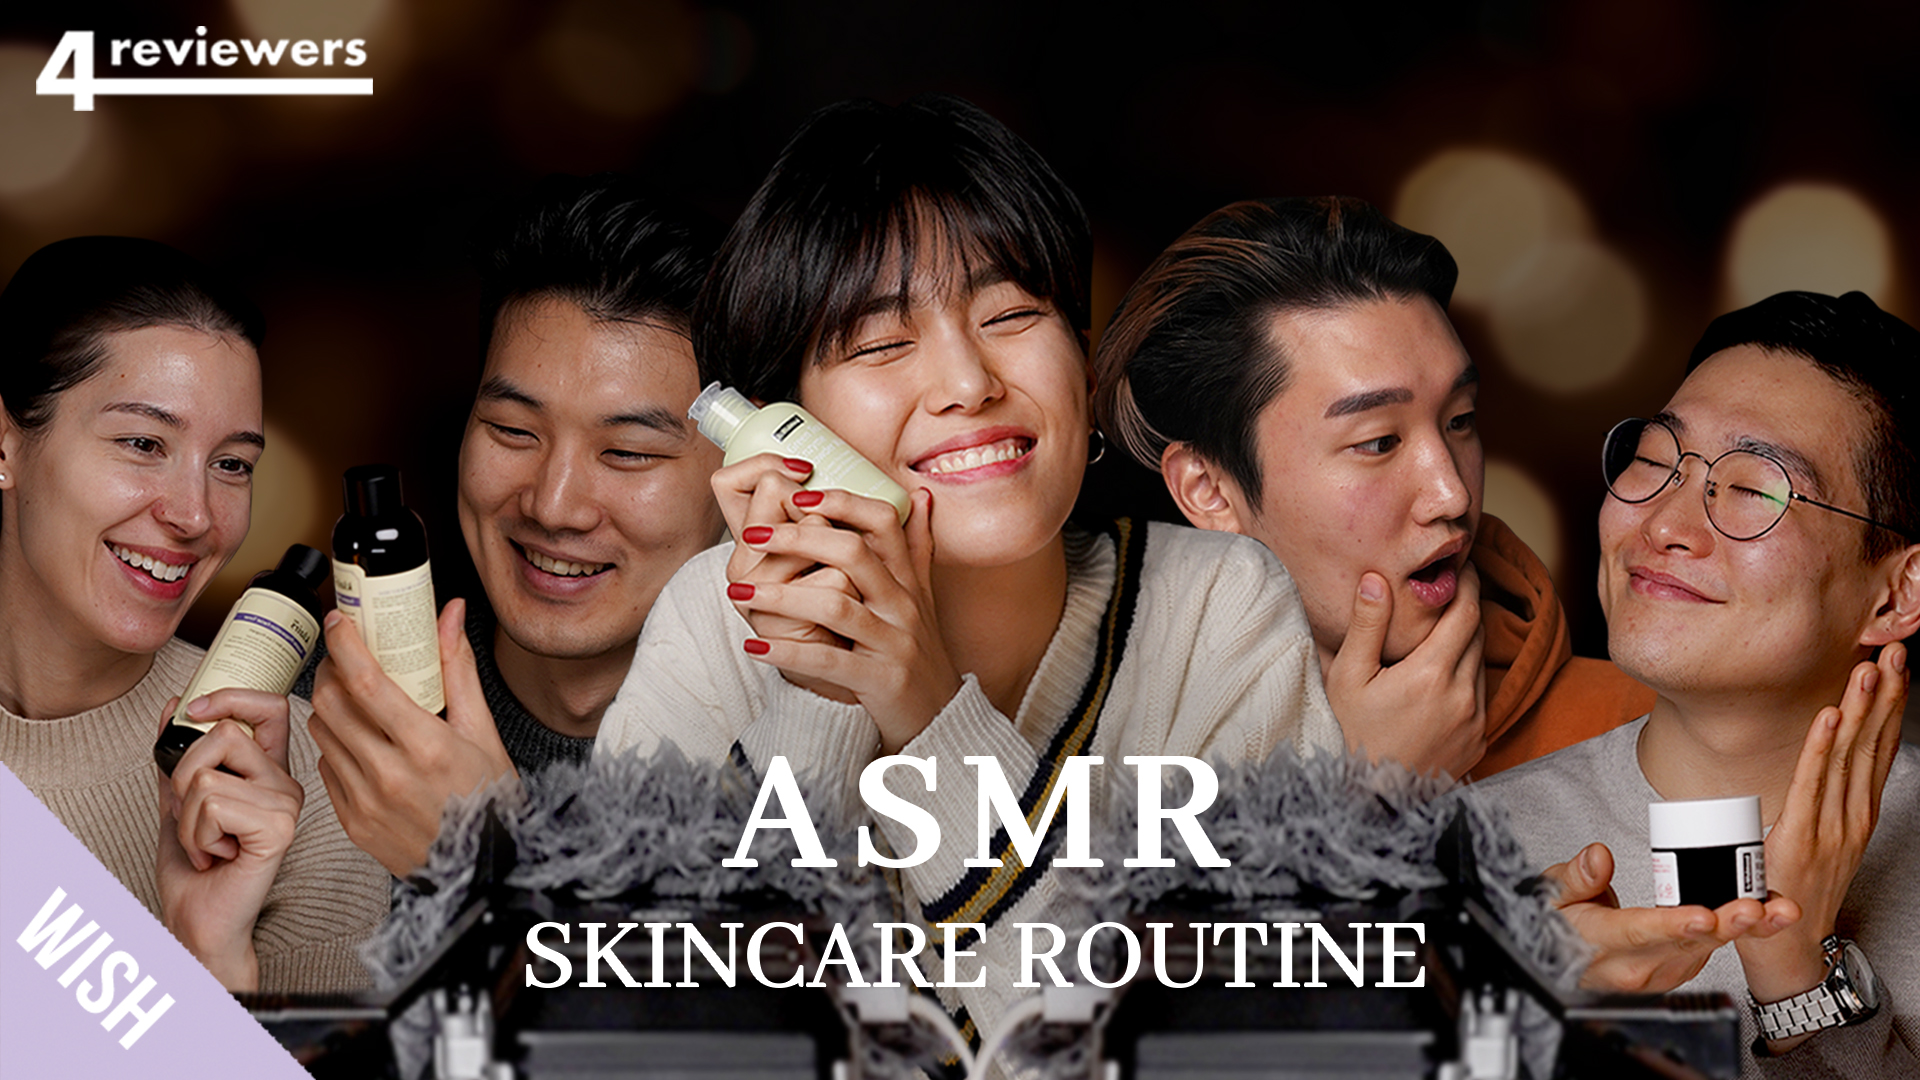 ASMR Skincare Routine For Moist & Healthy Skin with 4 Most Popular Guests! | 4 Reviewers